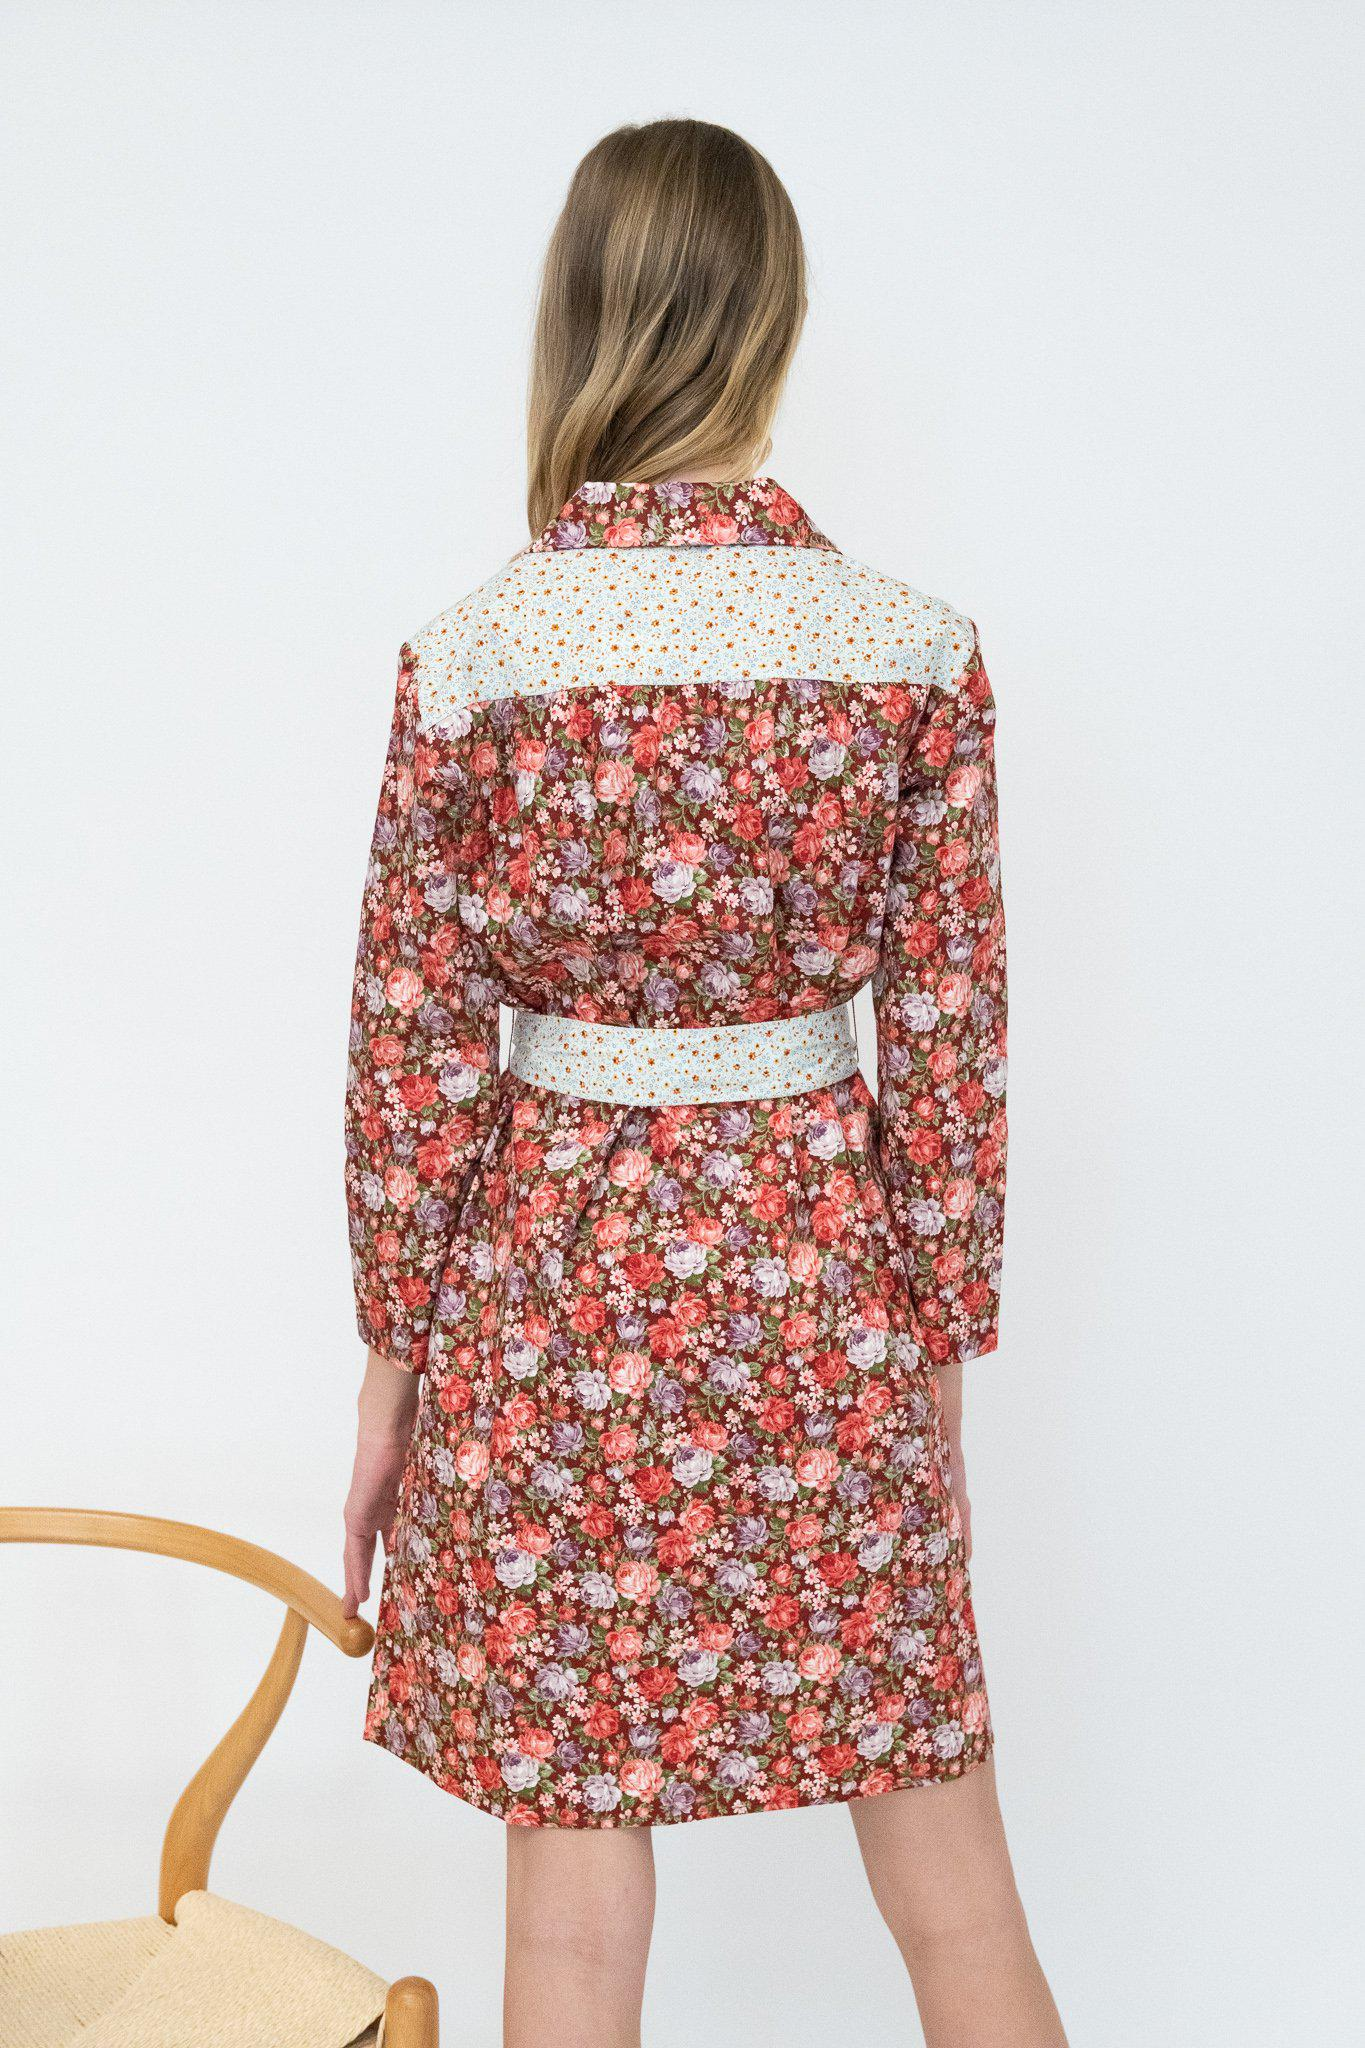 Long Sleeve Housedress in Cabernet Rose and Blue Floral 2